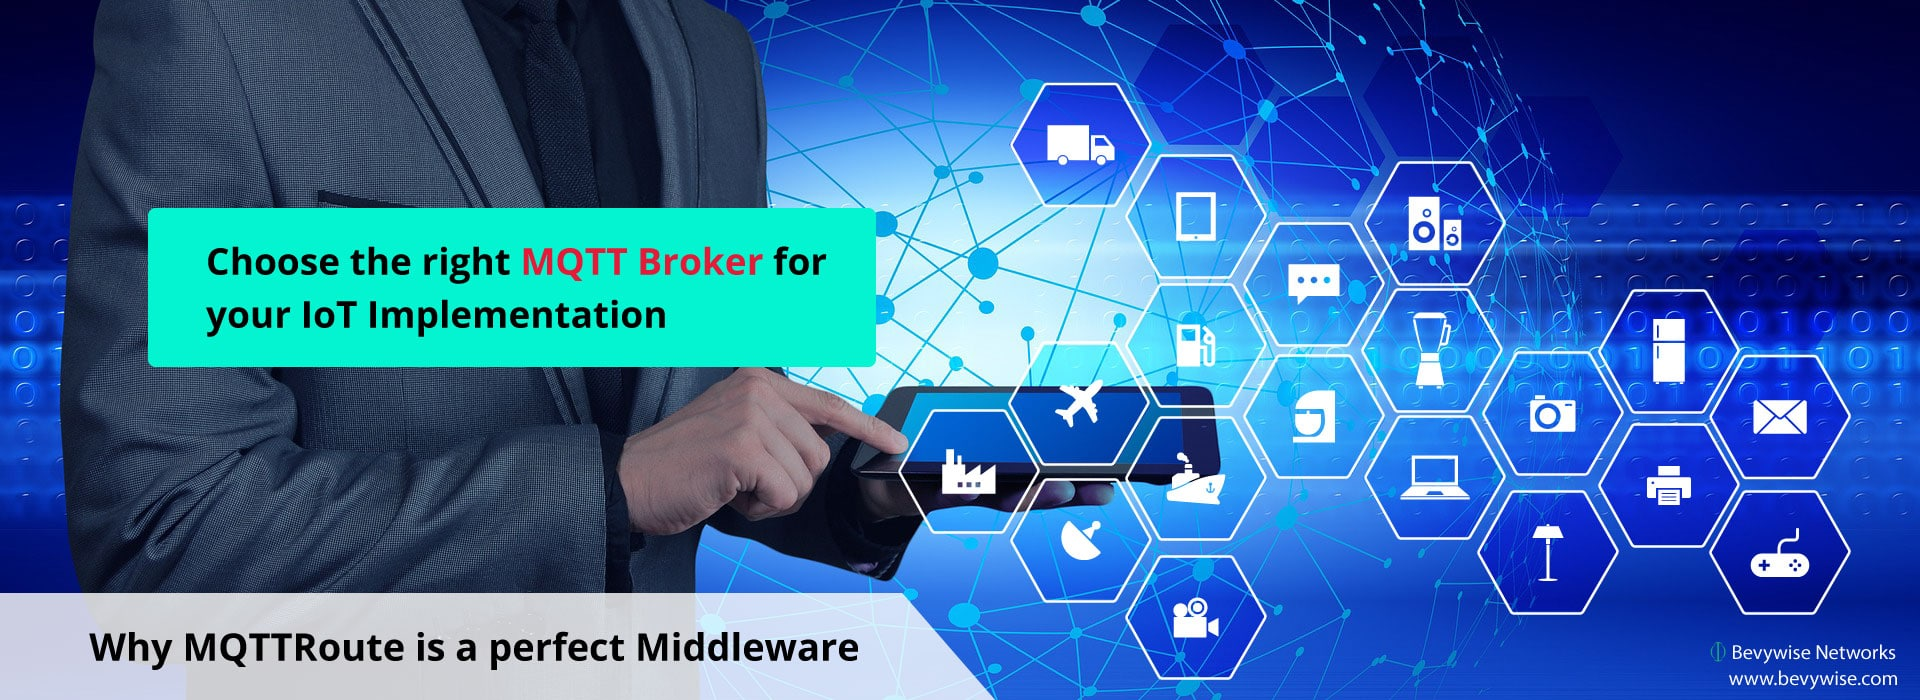 Choosing Best MQTT Broker for your IoT Implementation - Bevywise